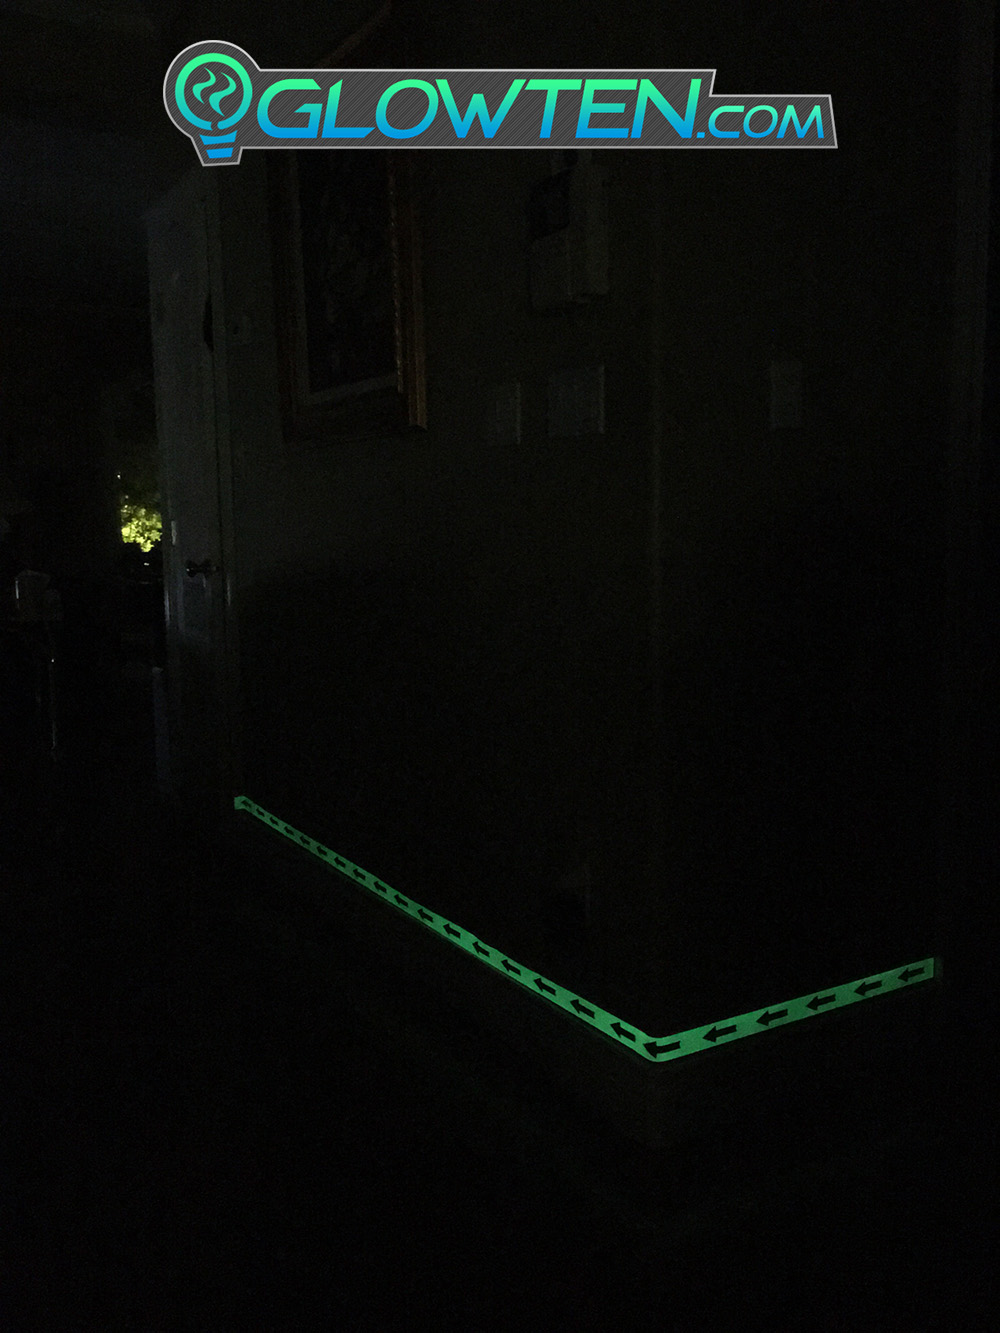 GLOWTEN.com - ARROW POINT TAPE Glow in the Dark Green Single Direction Sign All Purpose Tape Roll Lite Green Glow in the Dark Floor Signs Warning Tapes pic 6